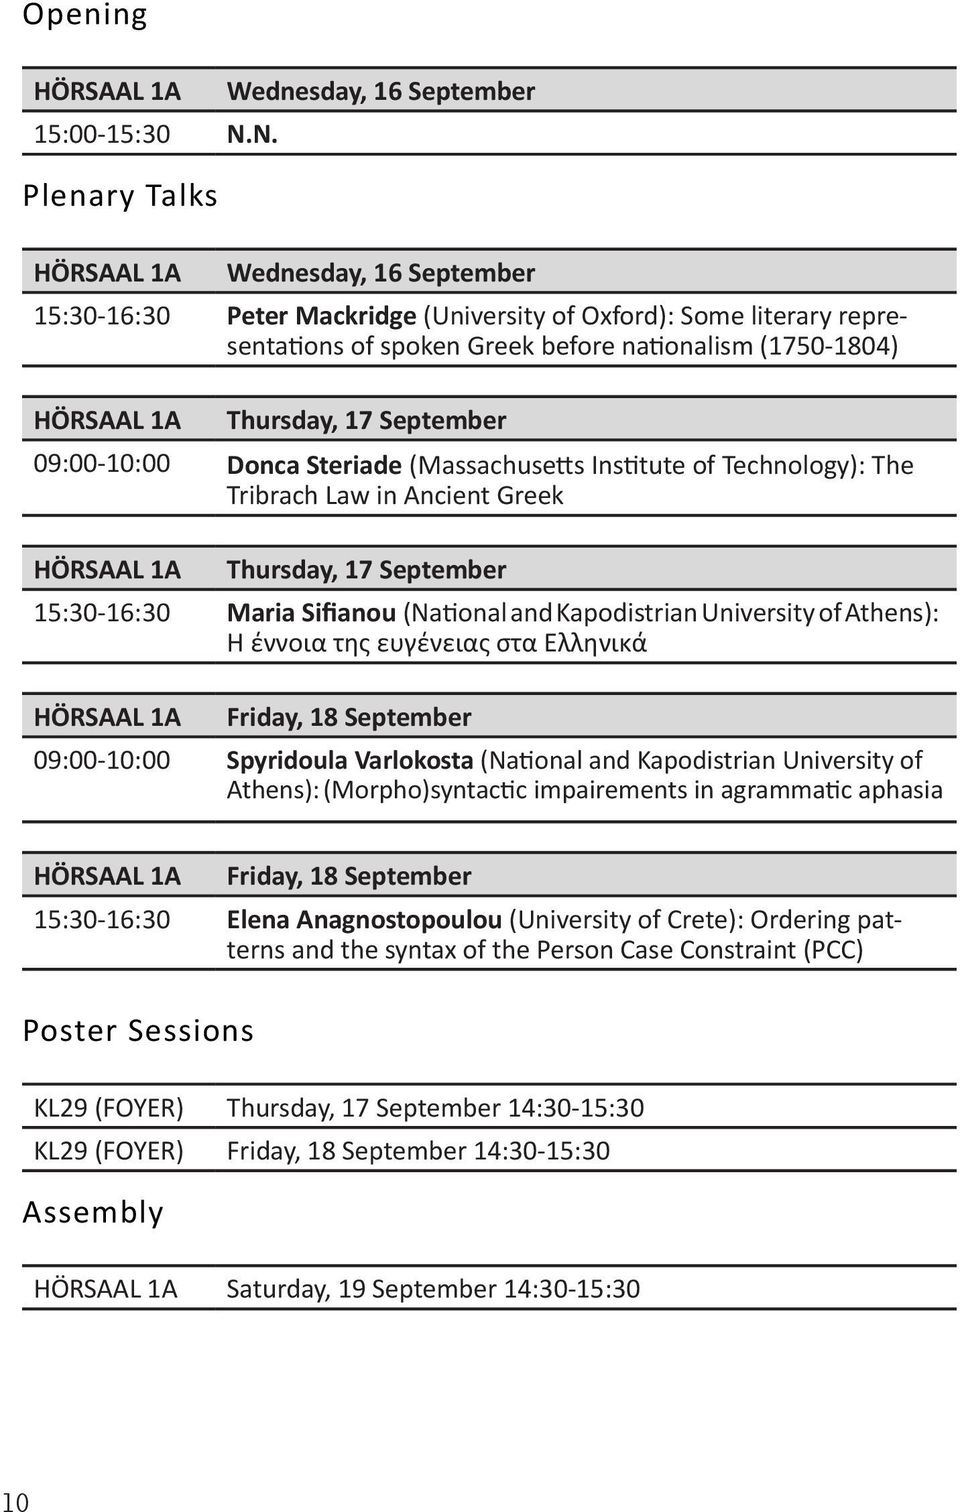 (1750-1804) HÖRSAAL 1A Thursday, 17 September 09:00-10:00 Donca Steriade (Massachusetts Institute of Technology): The Tribrach Law in Ancient Greek HÖRSAAL 1A Thursday, 17 September 15:30-16:30 Maria